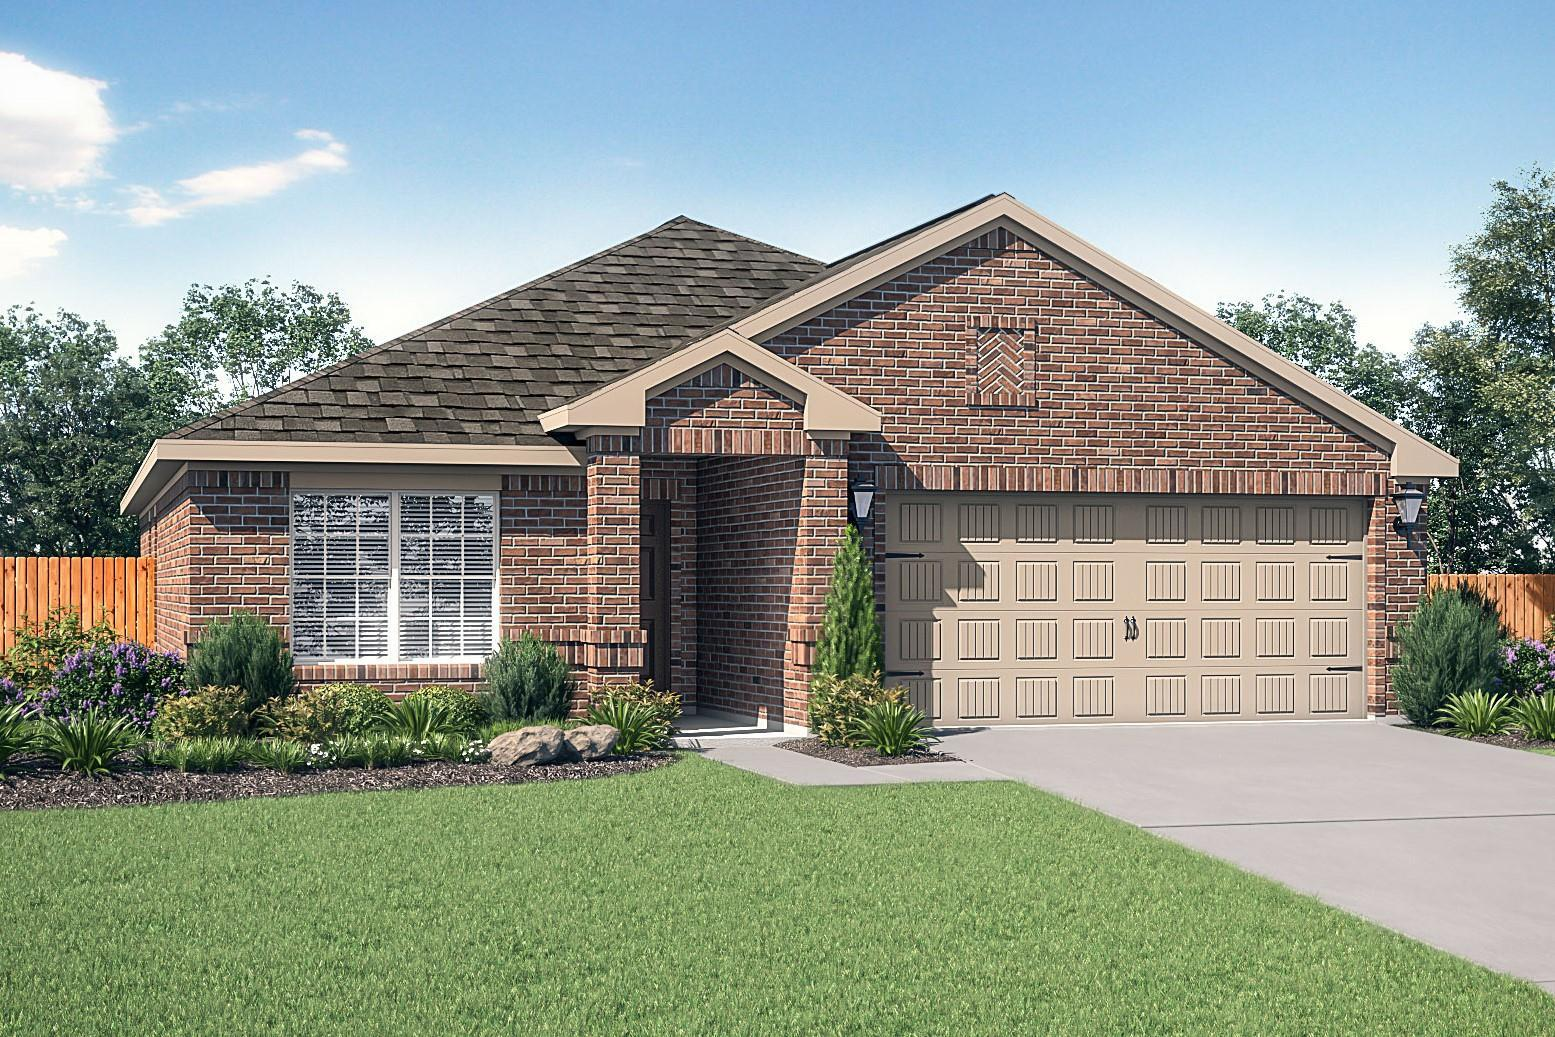 LGI Homes at Chisholm Springs:The Blanco plan at Chisholm Springs is now available!